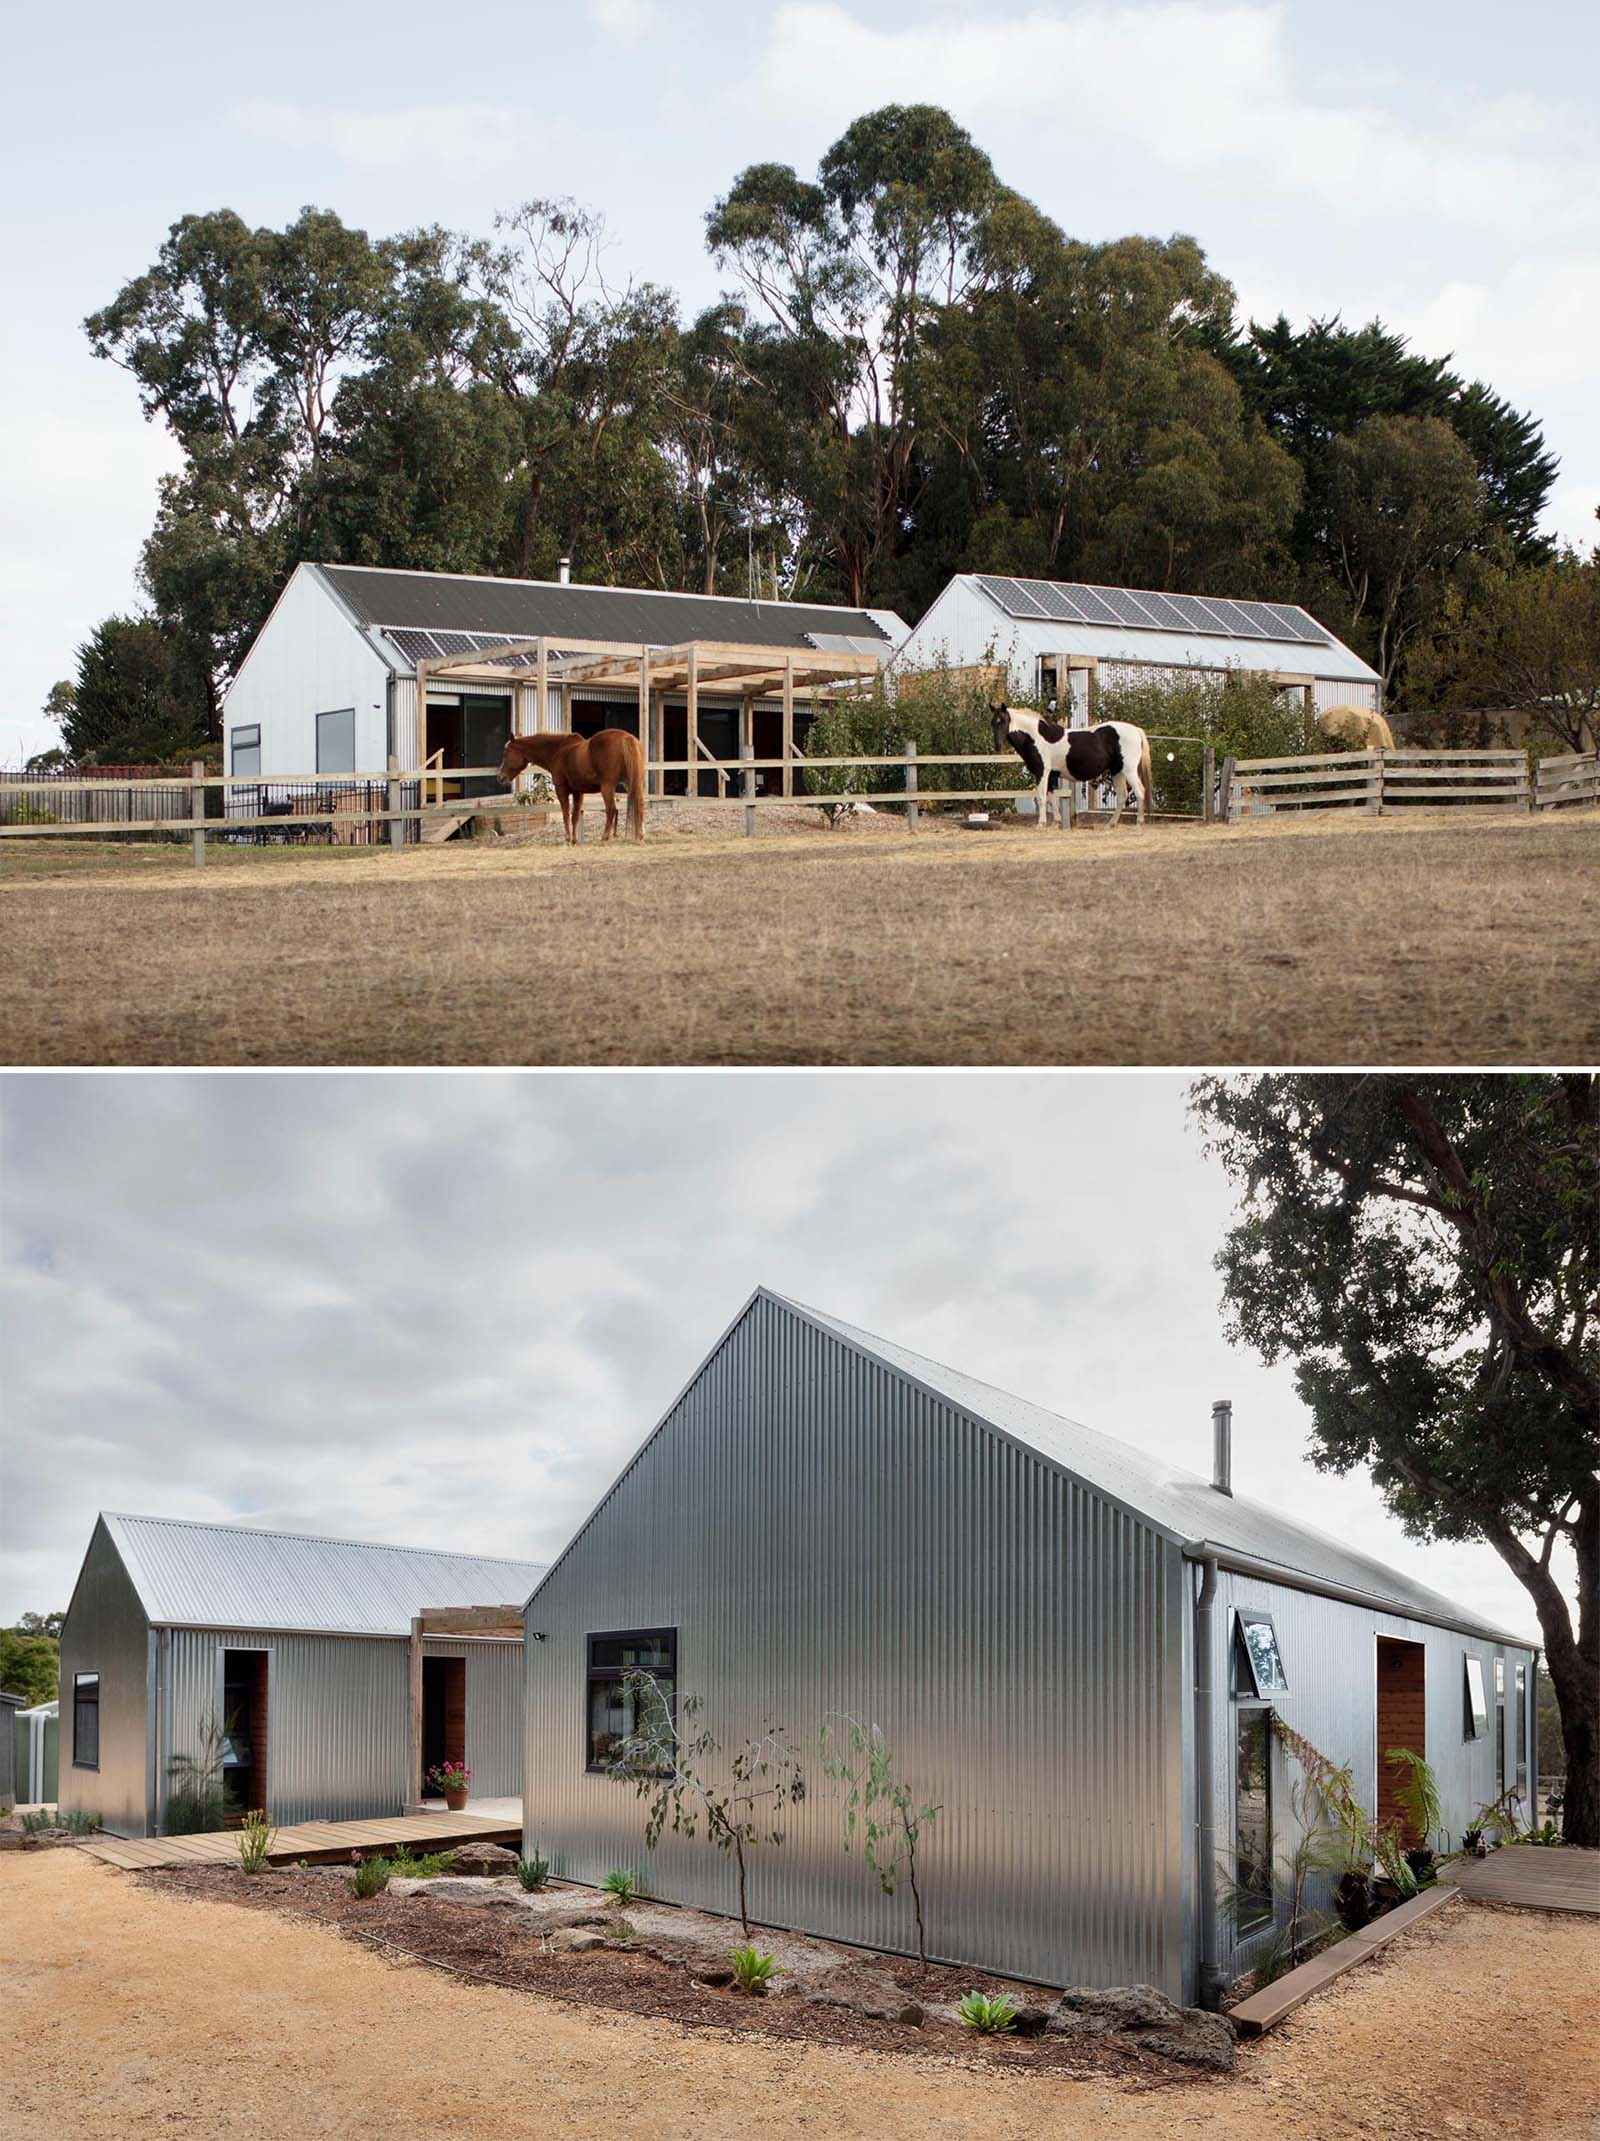 A modern house covered in corrugated metal siding.